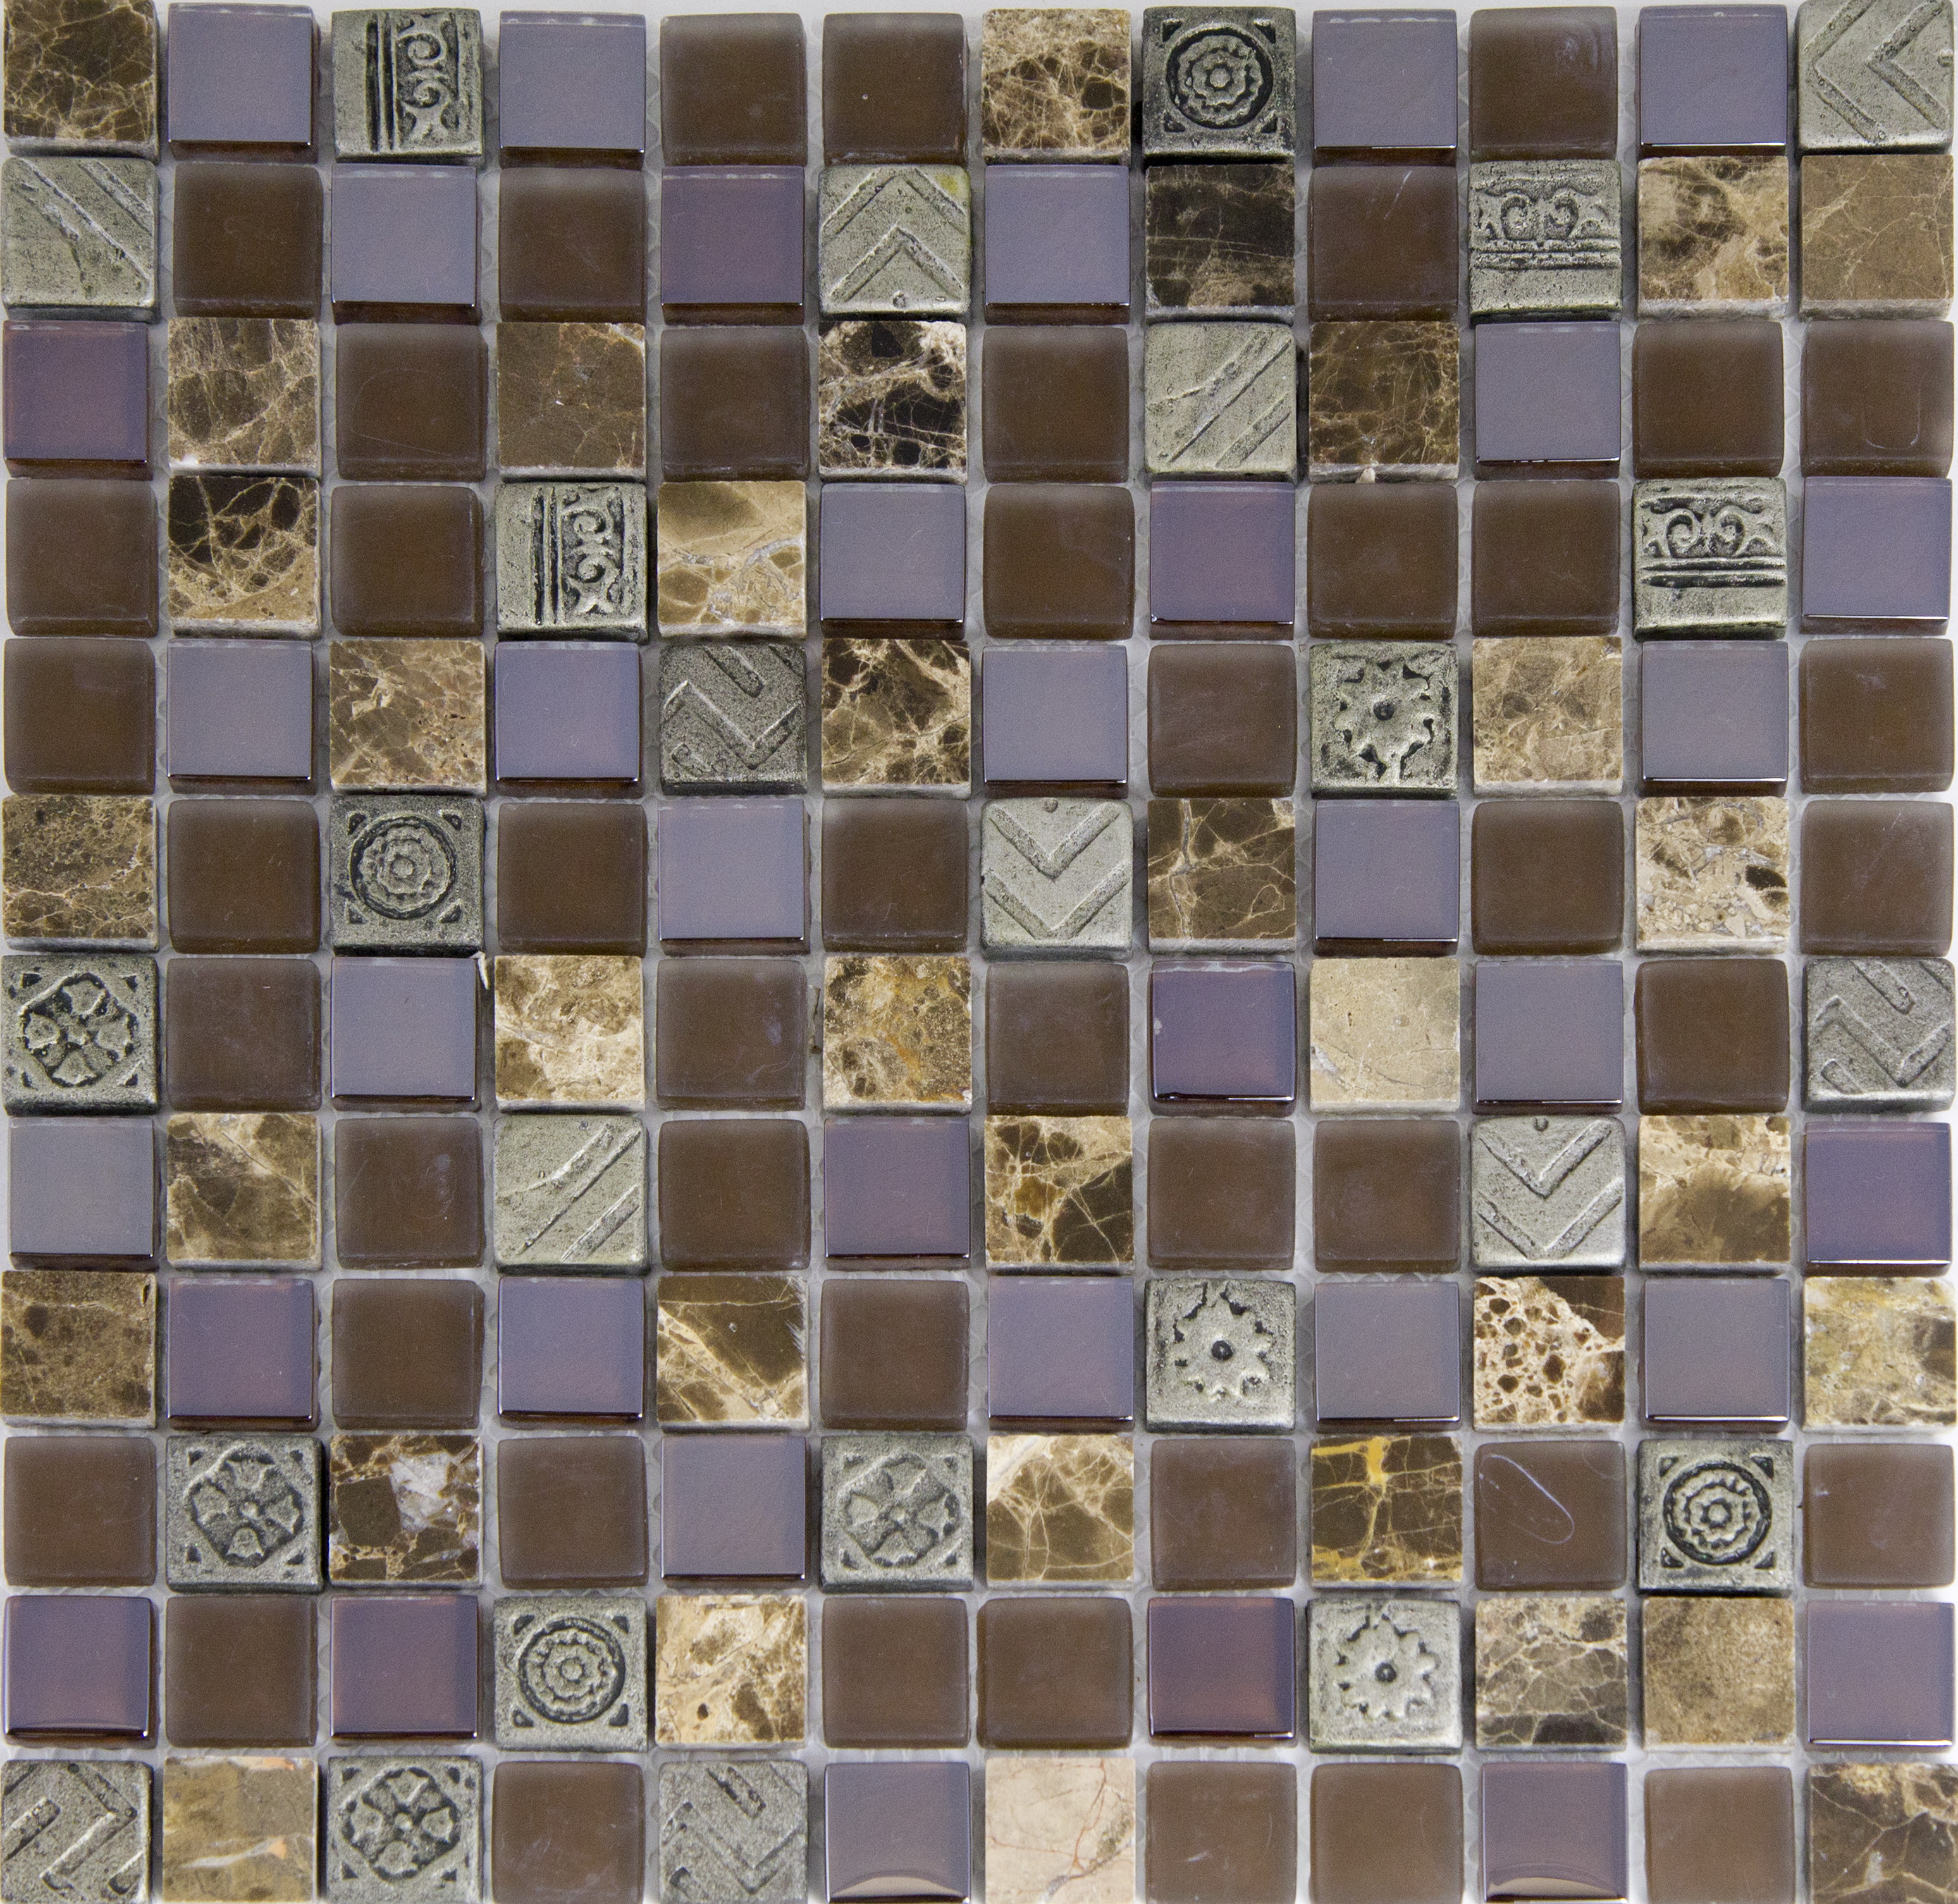 Gm 11 Tuscany Petraslate Tile Stone Is A Wholesale Supplier Of